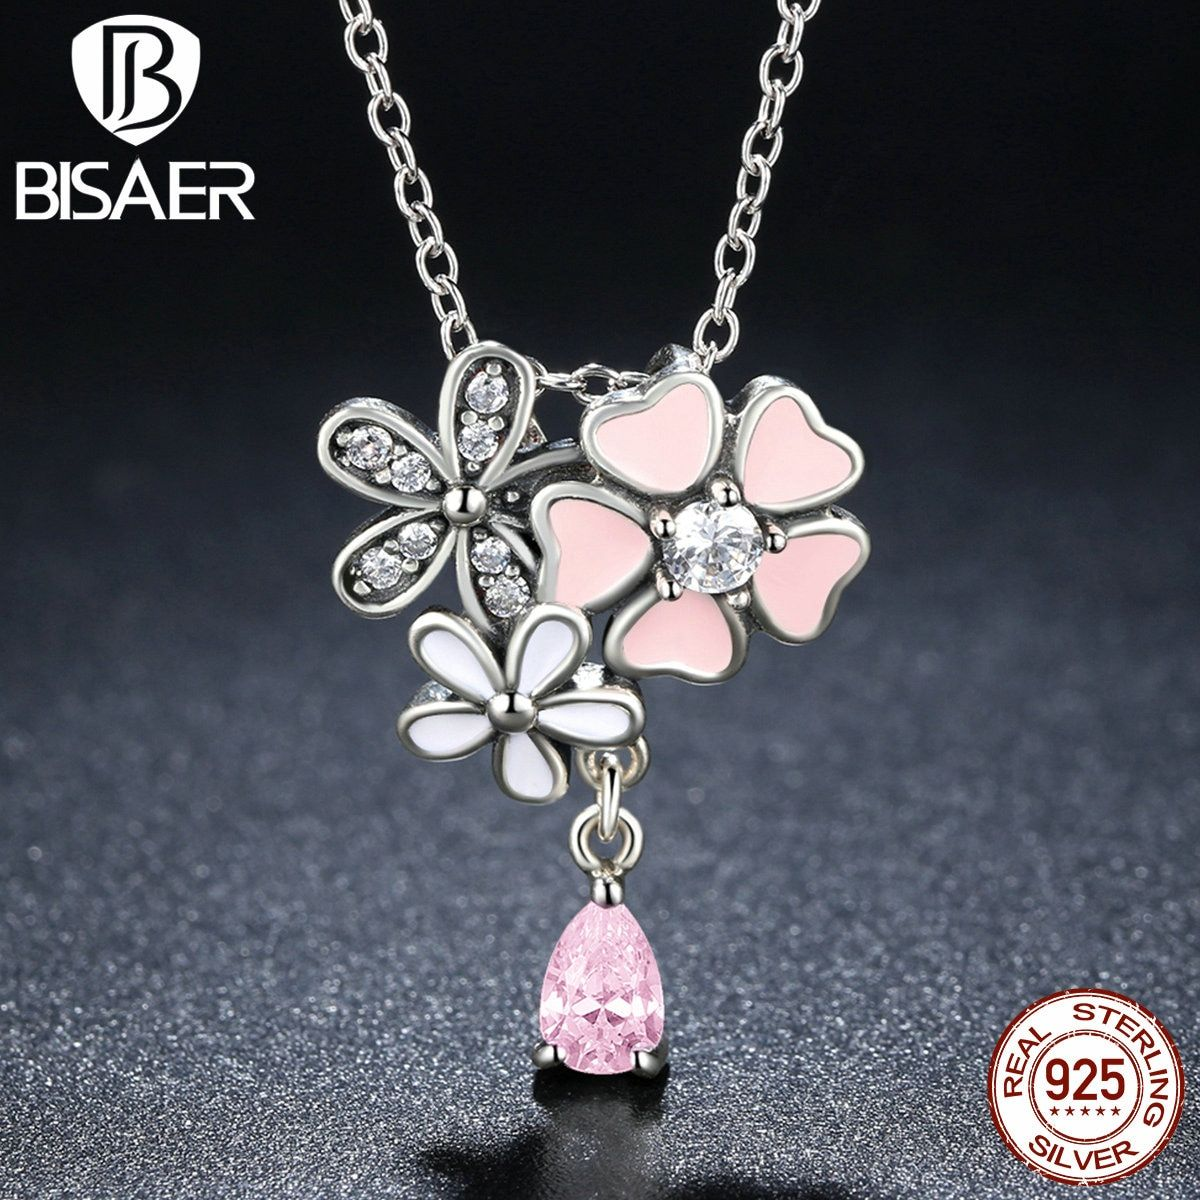 Genuine 925 Sterling Silver Pink Heart Blossom Cherry Flower Pendant Necklaces & Pendants Nyx Women Necklace Fine Jewelry S925